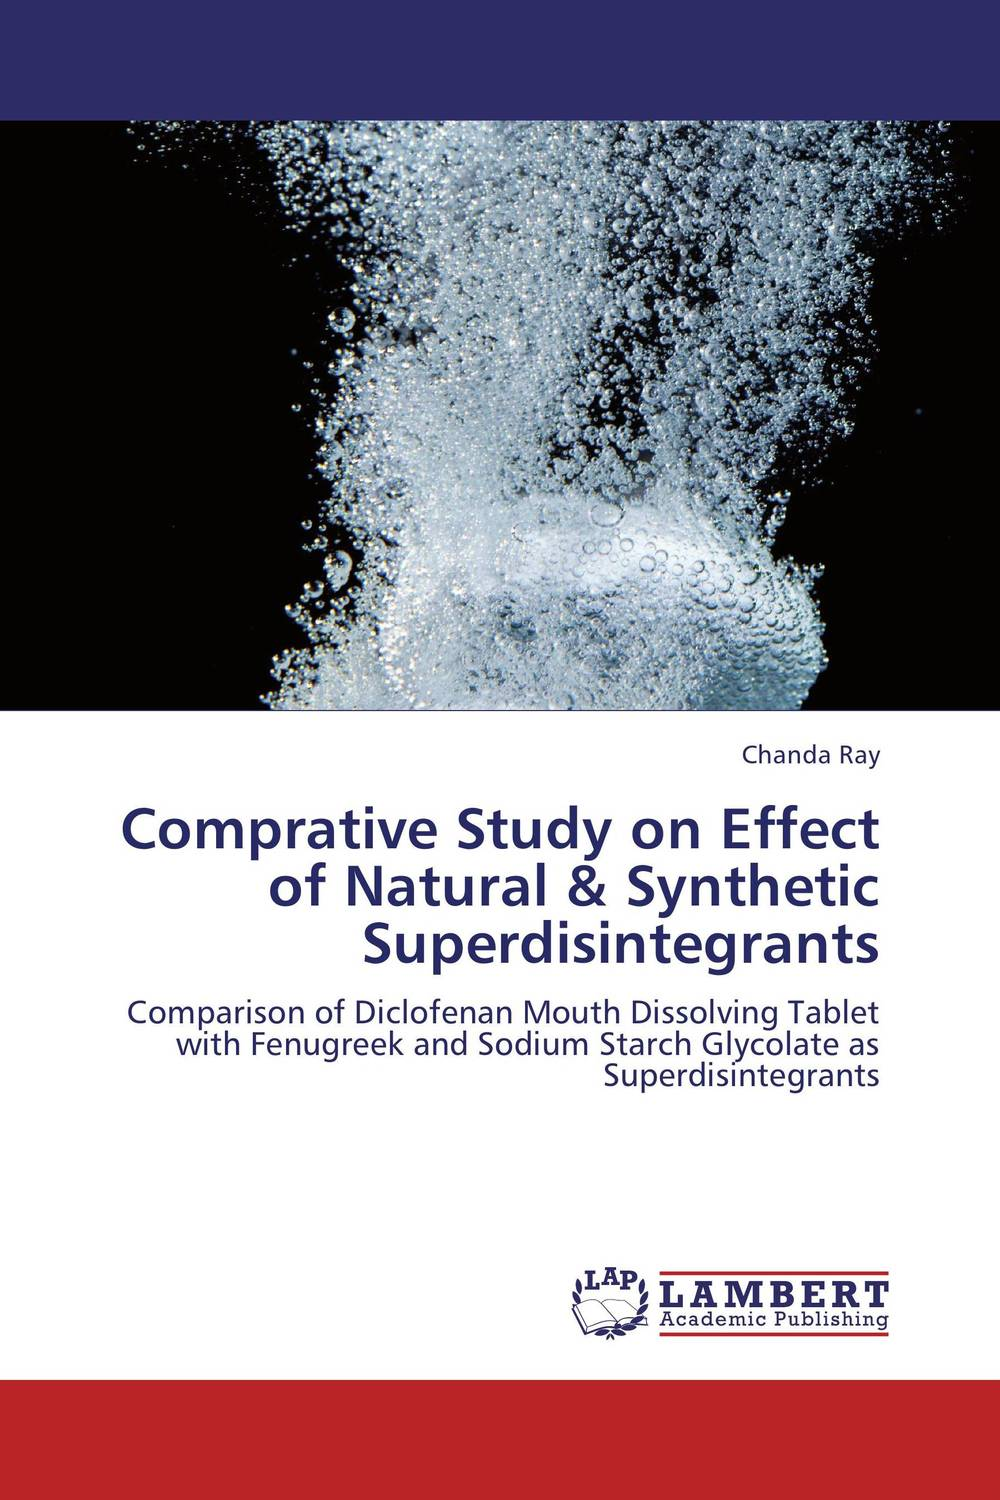 Comprative Study on Effect of Natural & Synthetic Superdisintegrants vishal polara and pooja bhatt effect of node density and transmission range on zrp